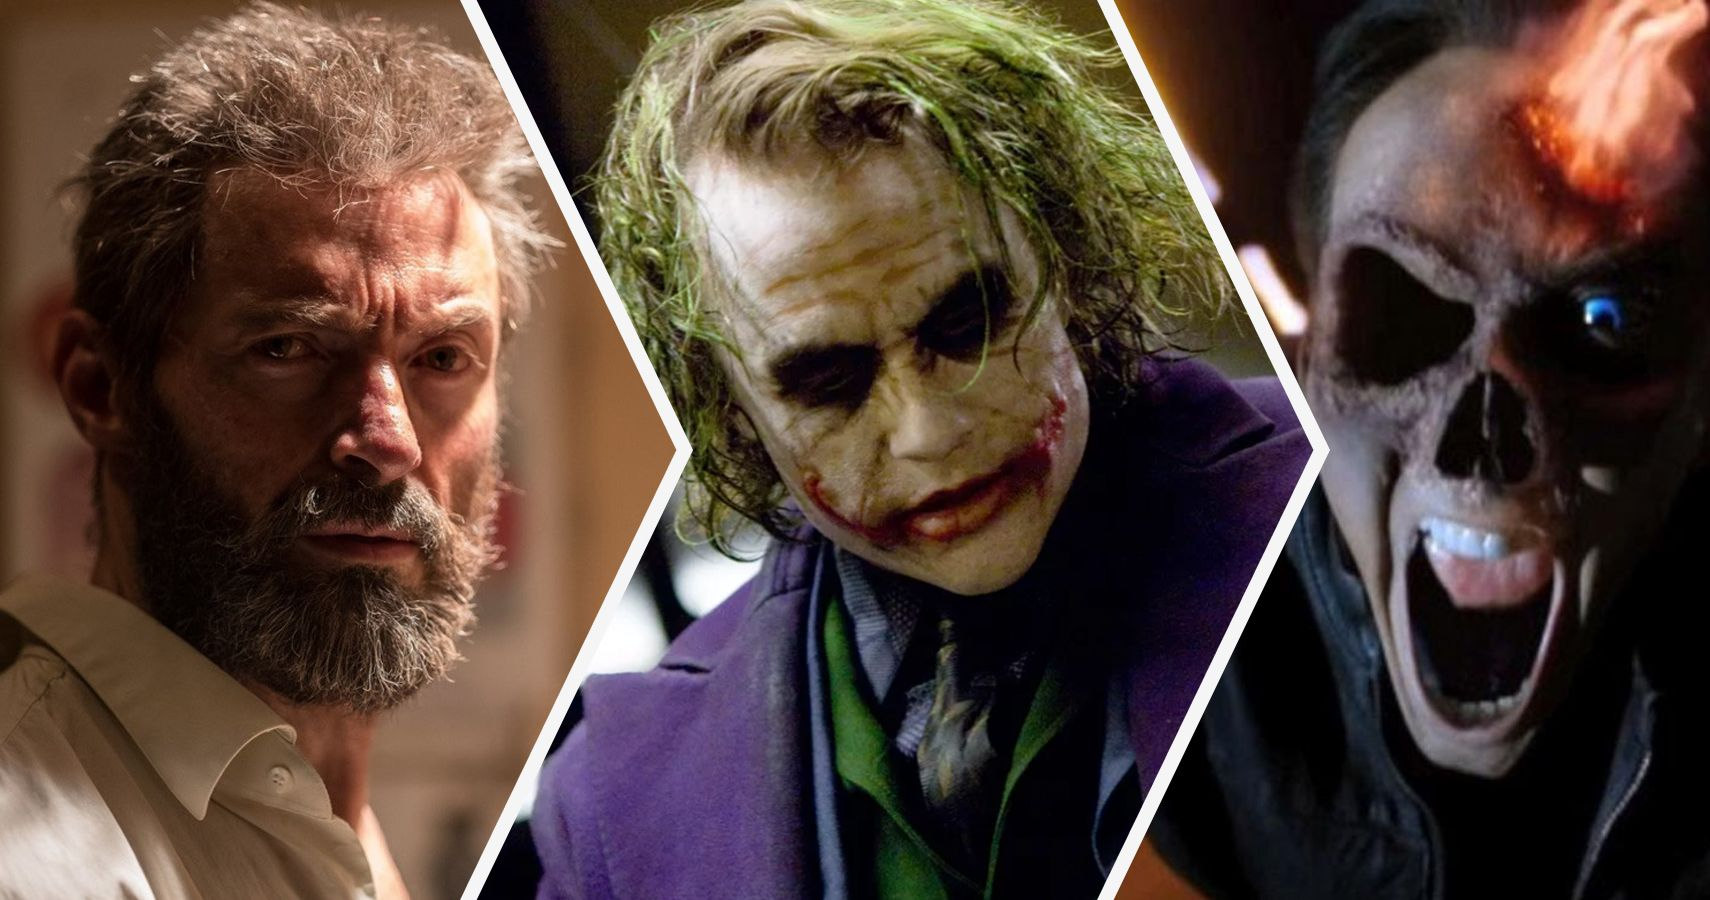 Actors Who Took Their Superhero Movie Role Way Too Seriously